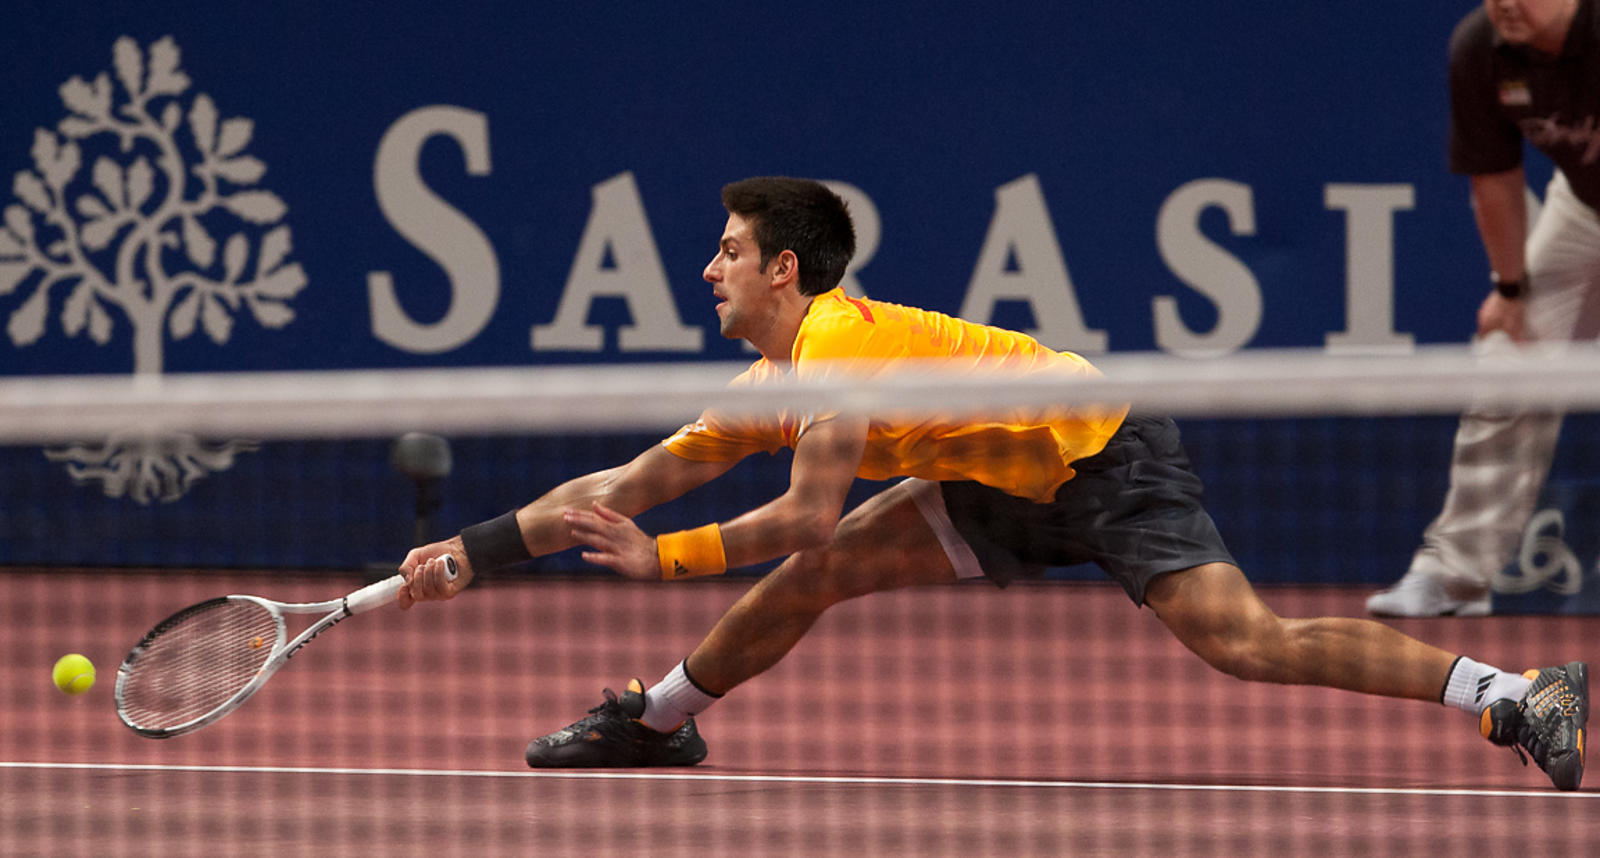 Basel: ATP Tournament Novak Djokovic vs Radek Stepanek